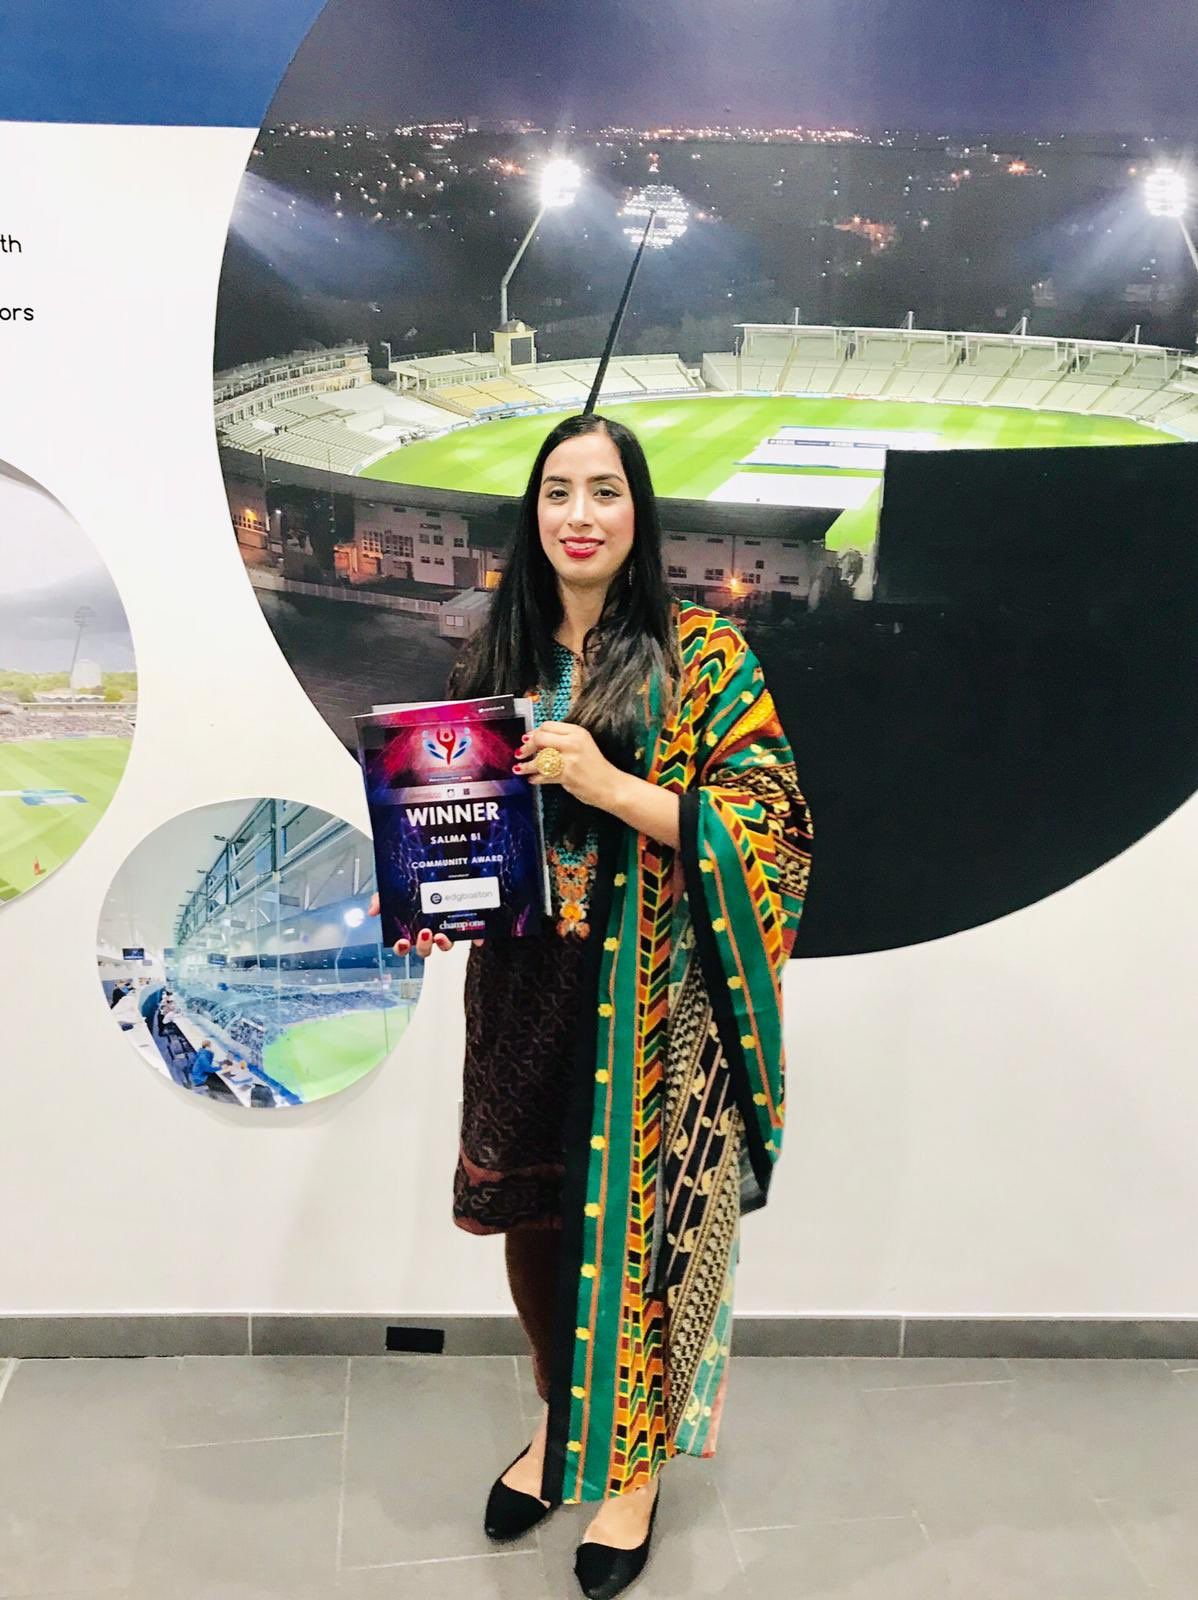 Salma Bi   There are no limits to what you can accomplish, except the limits you place on your own thinking' Someone out there is praying for me as I have only gone & won the Community Award tonight at the Birmingham Sports Awards 2018